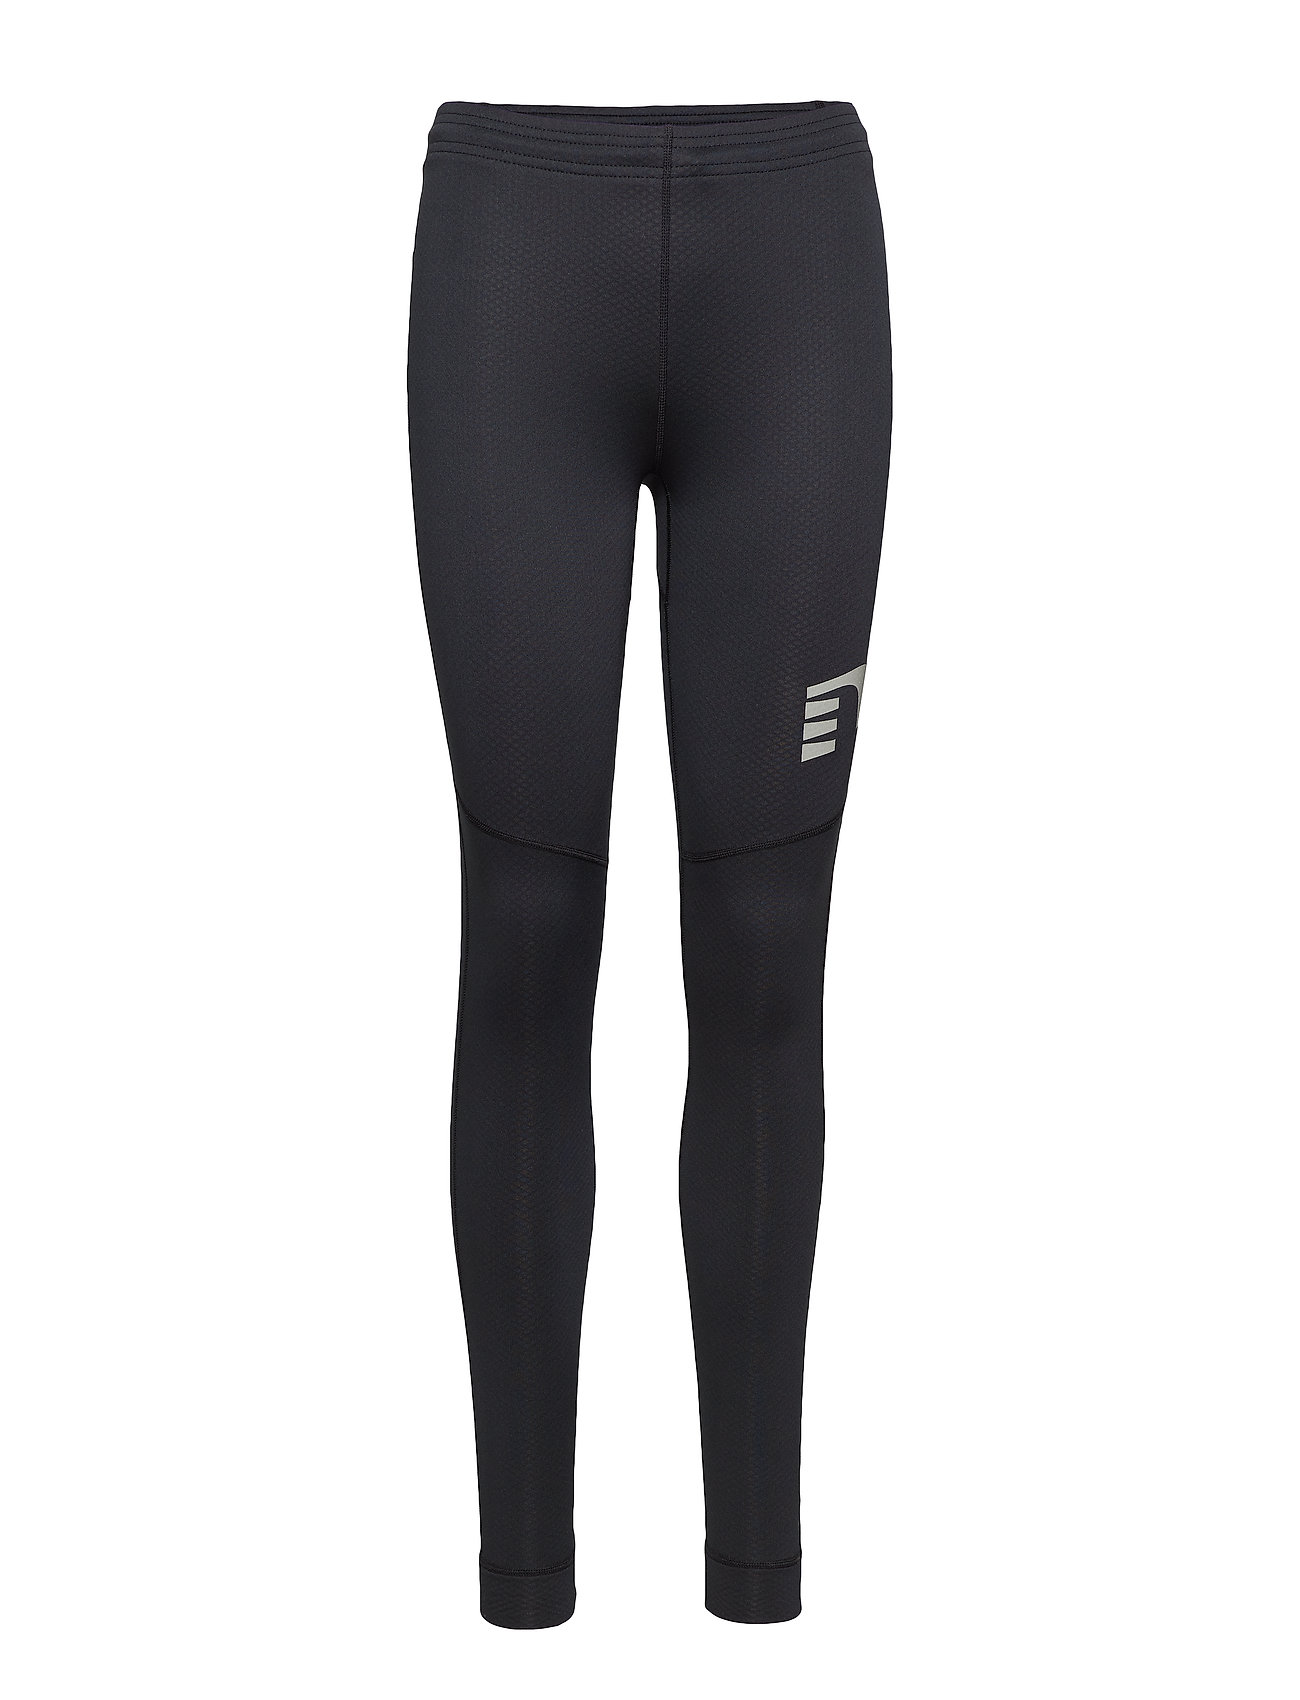 Newline Black Thermal Power Tights